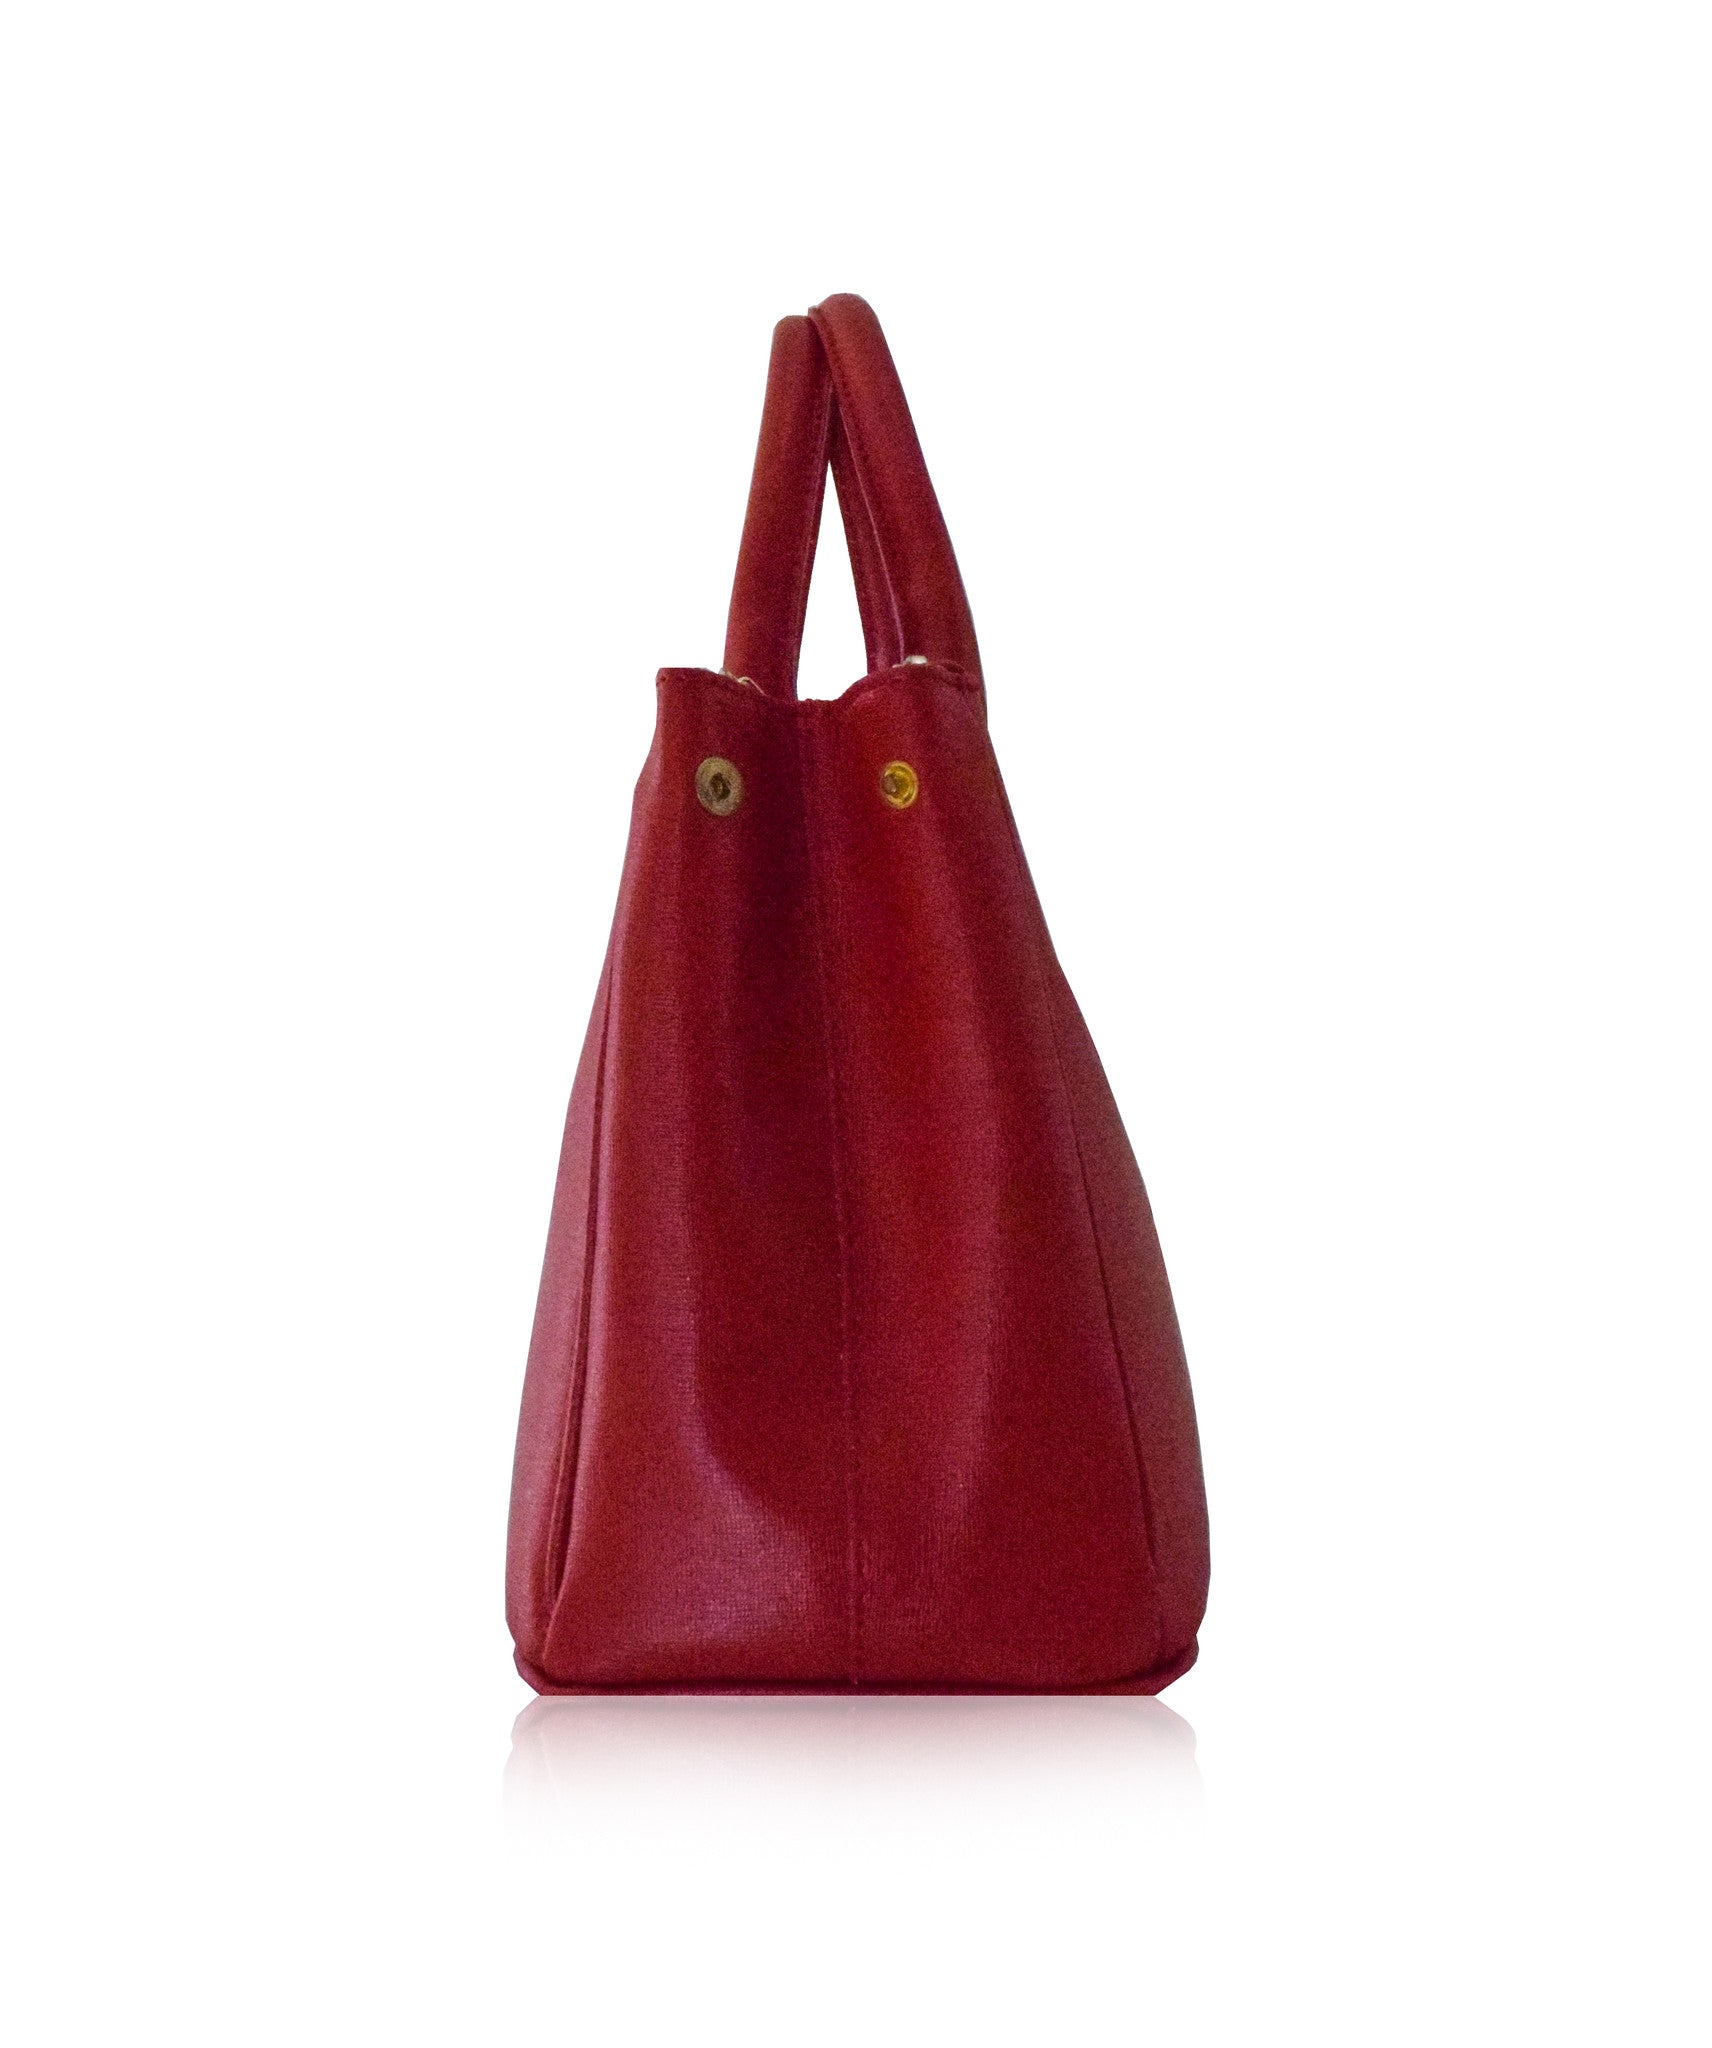 beaa264d72 ROSELLA Small Red Prada Style Saffiano Leather Tote Bag